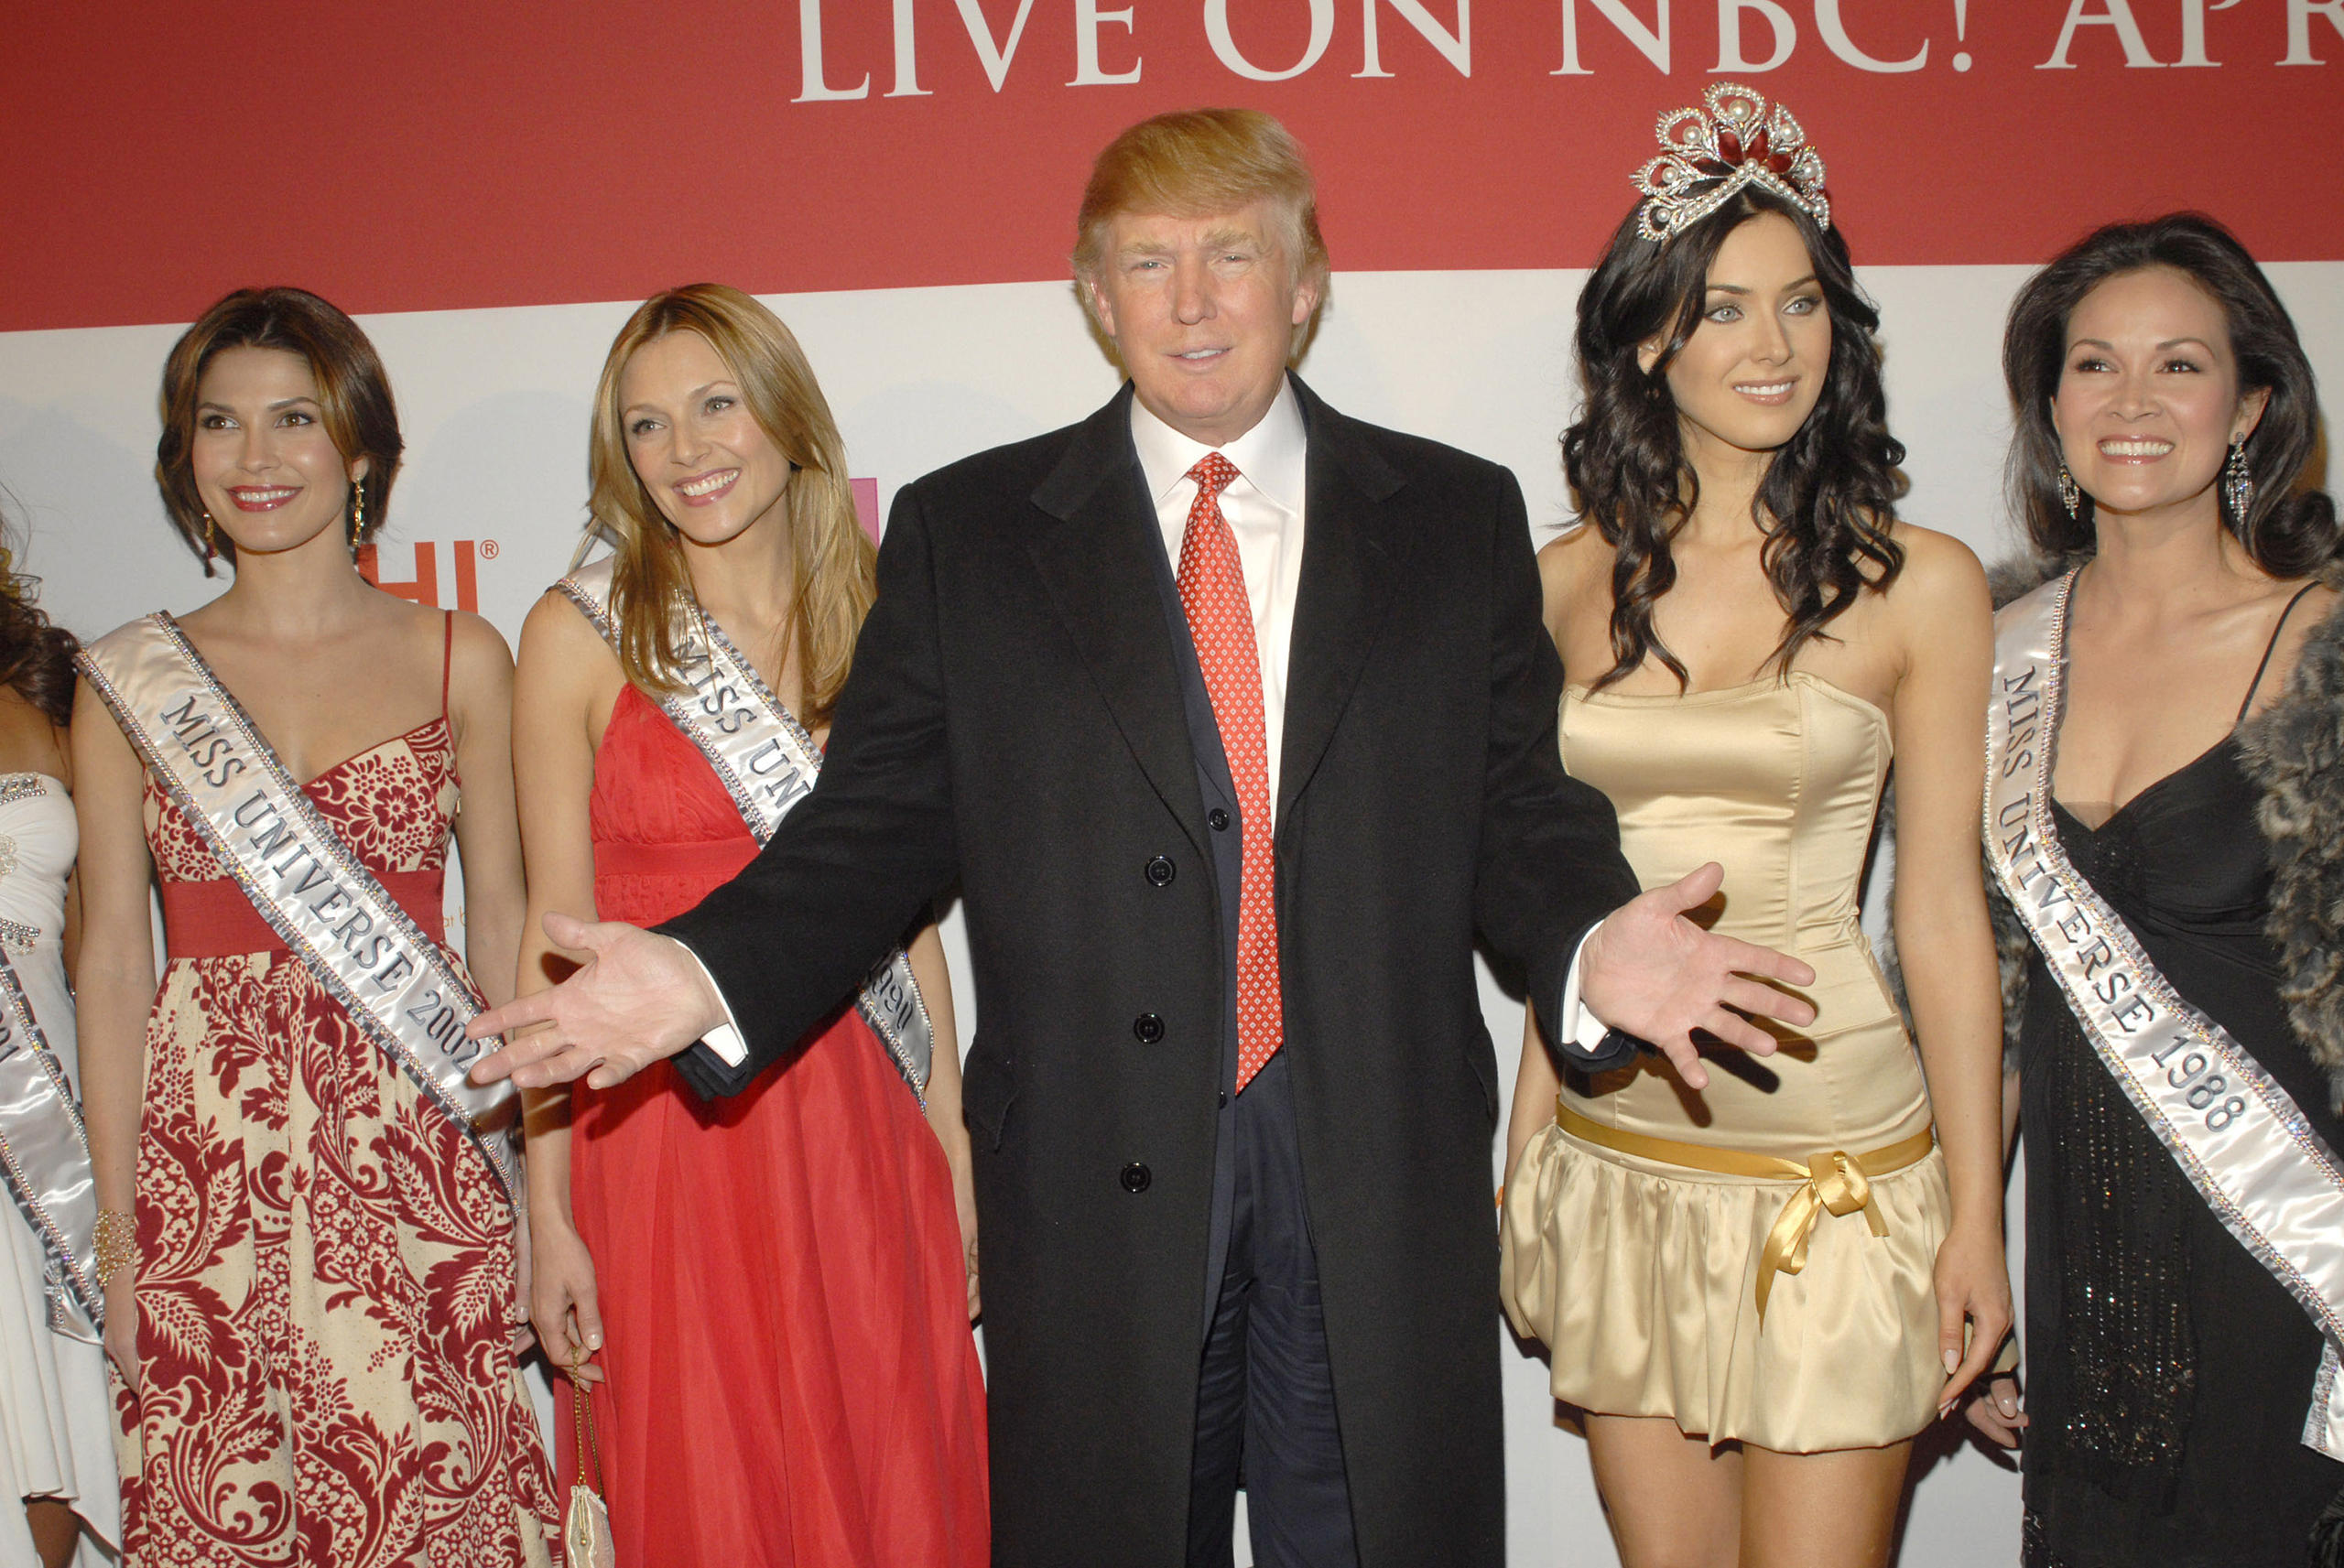 Donald Trump with former Miss Universes and the 2006 current Miss Universe, Natalie Glebova, April 18, 2006.